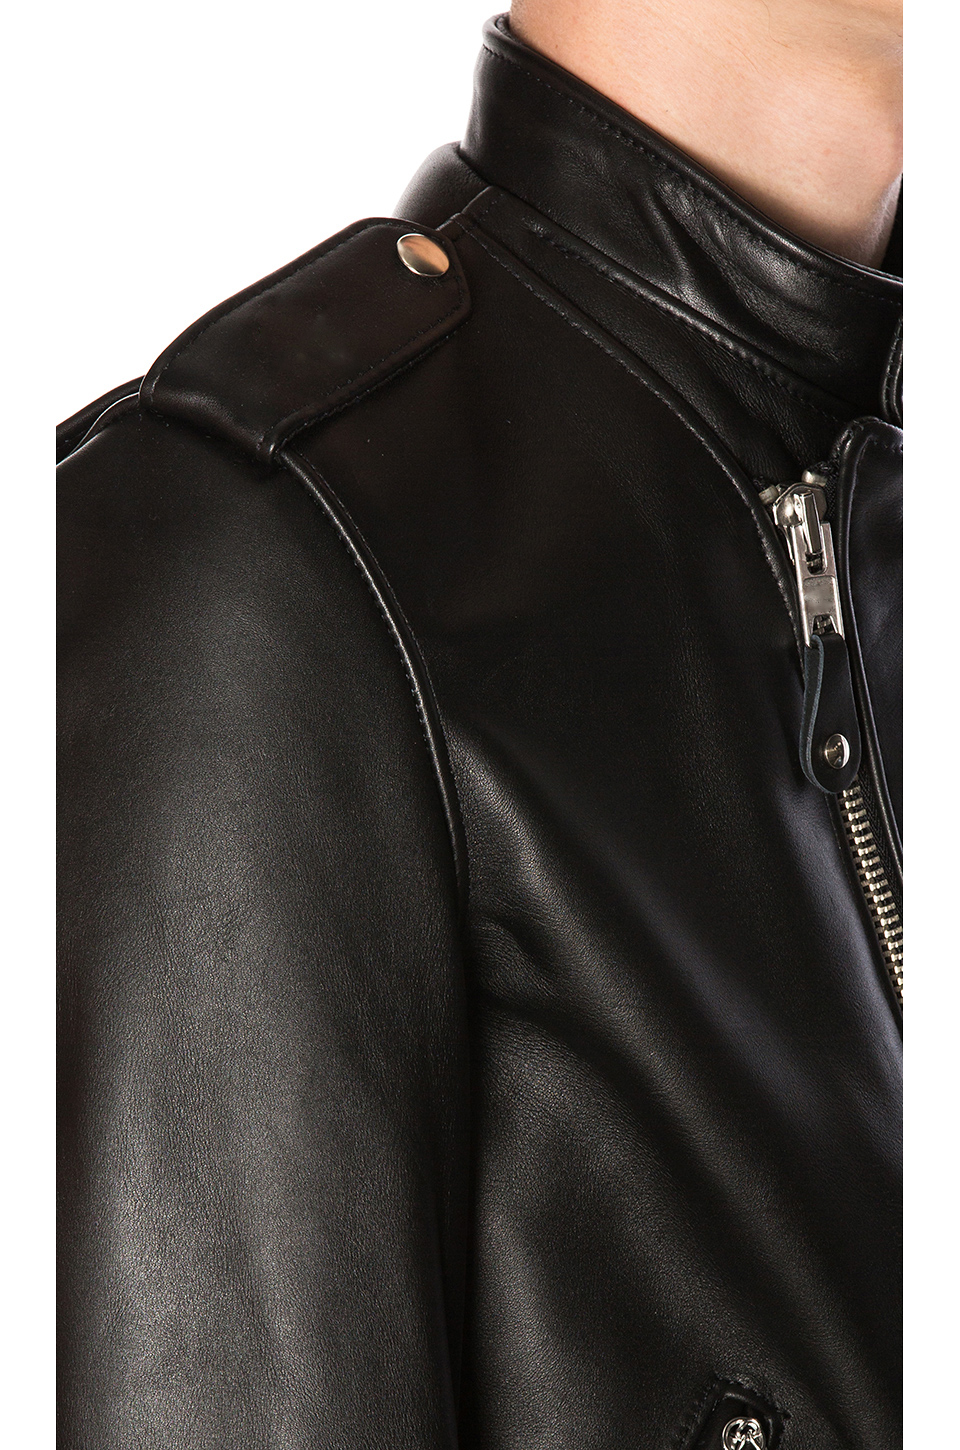 2019 mens new fashion cool style man PU leather winter jacket with high quality